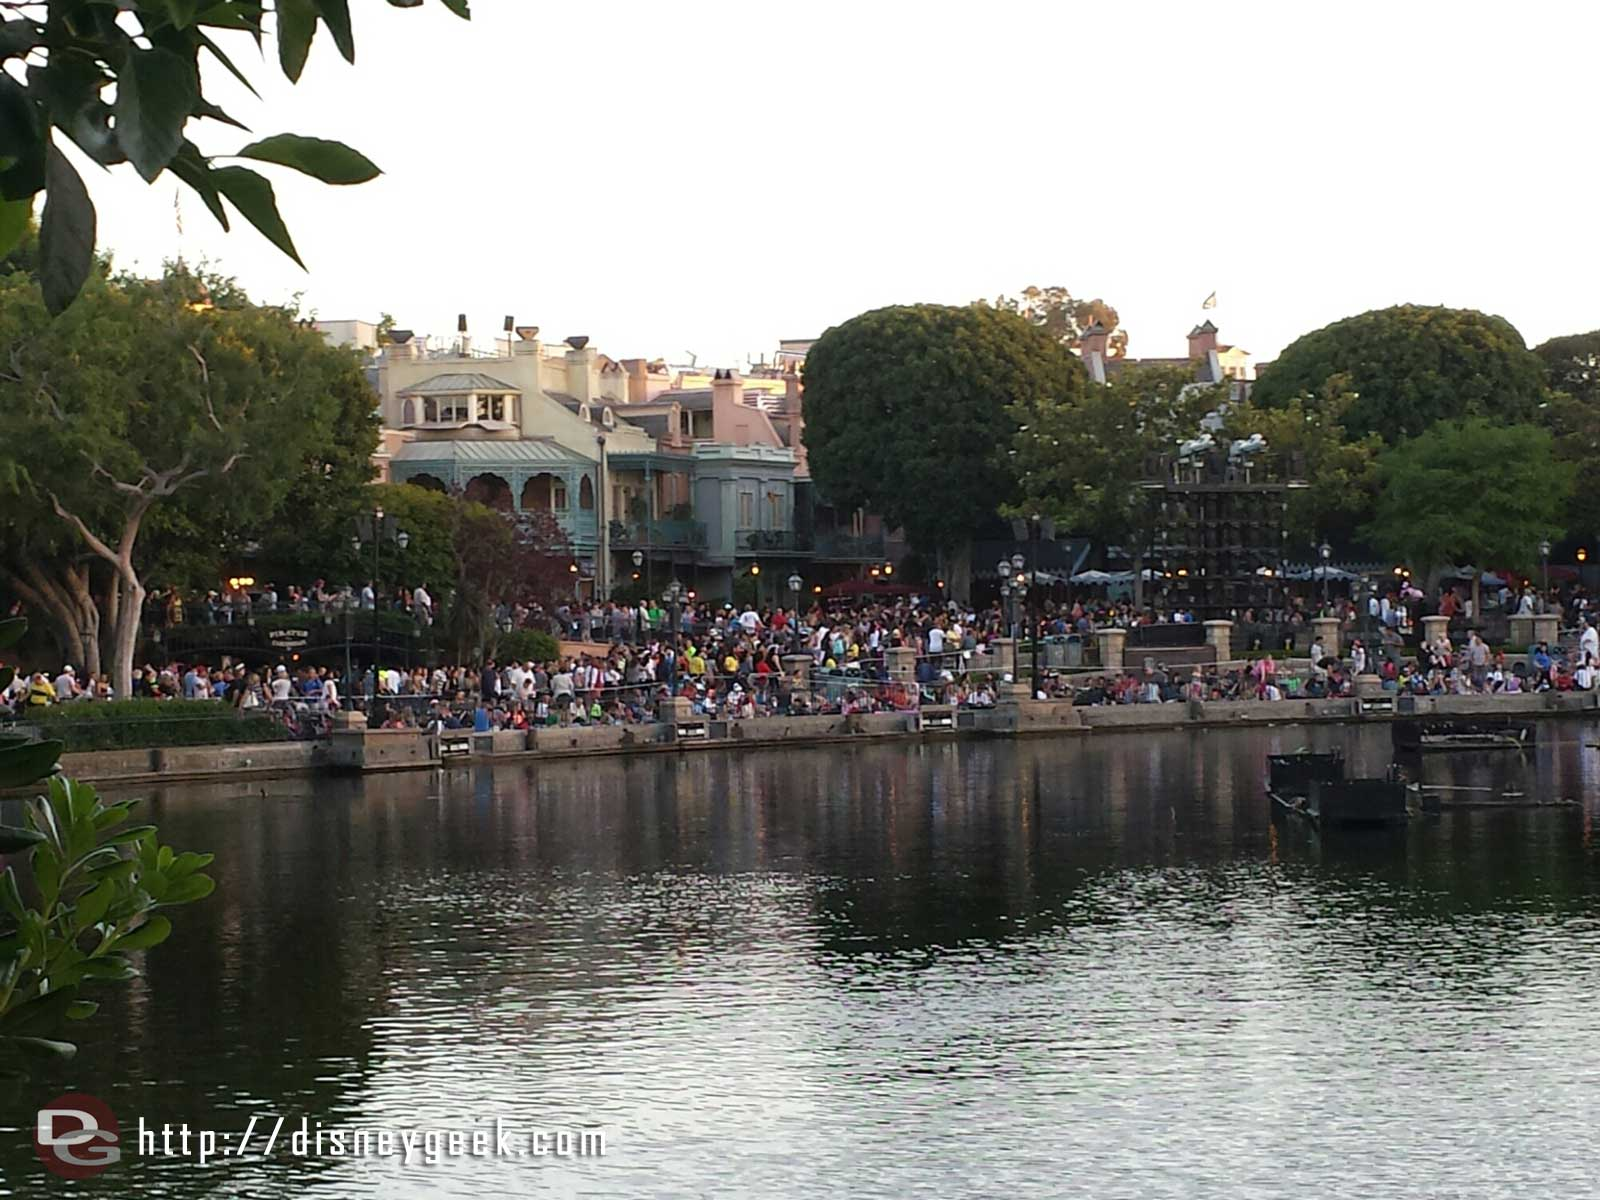 The Rivers of America waterfront this evening, a good crowd for Fantasmic! in 80 min